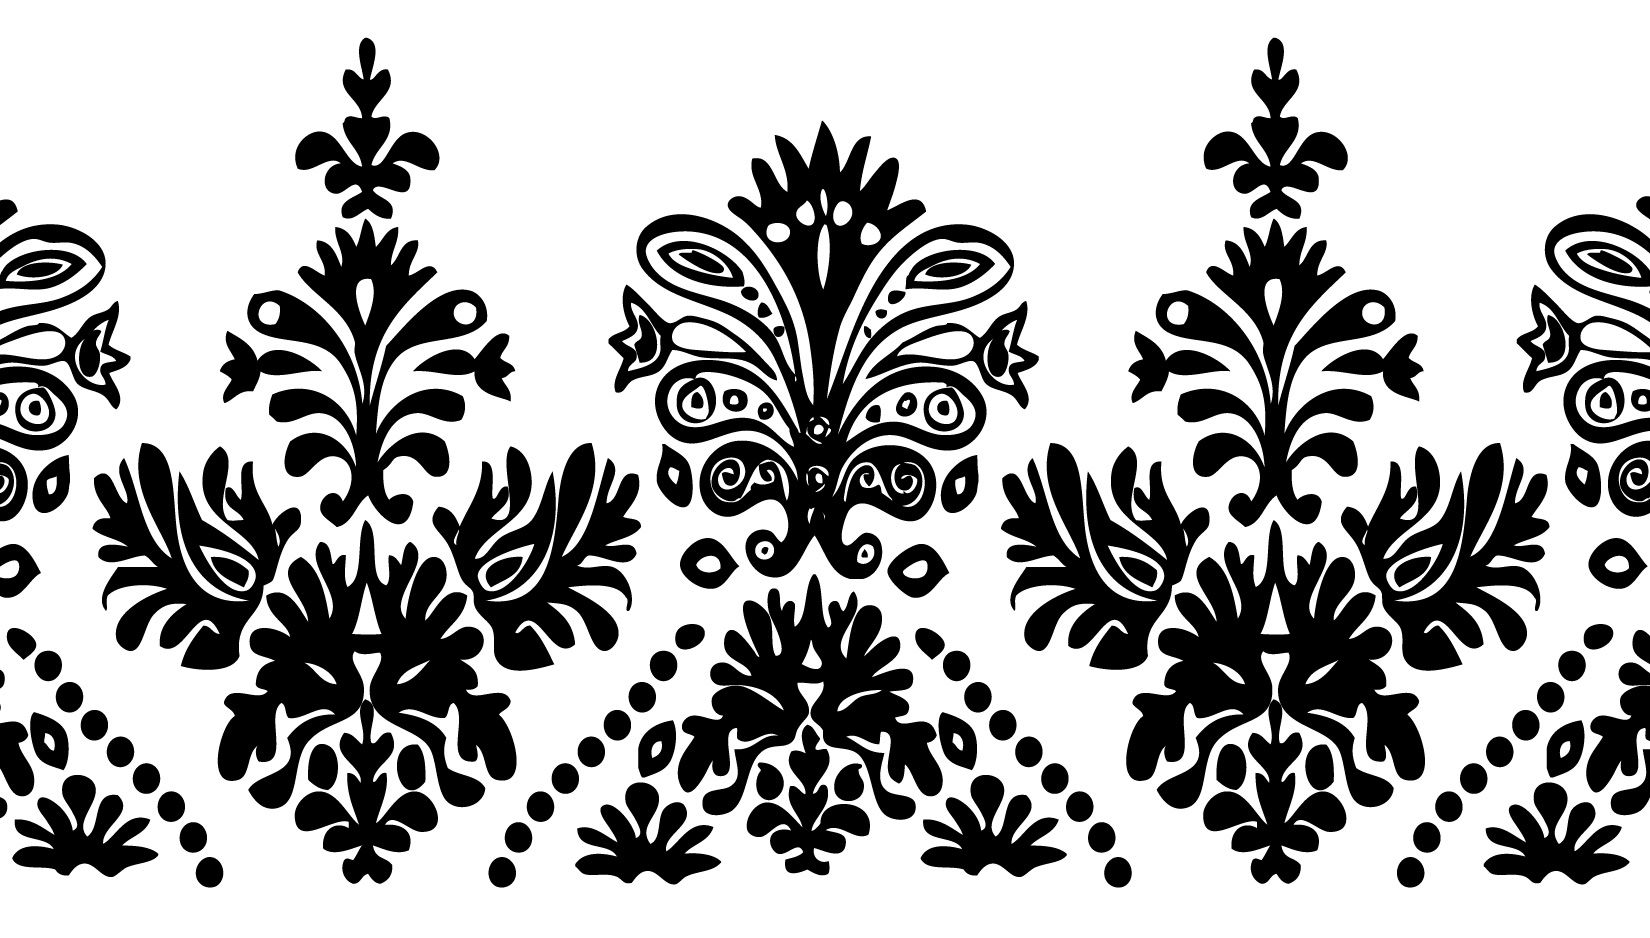 Stencils Designs Free Printable Downloads Stencil 063 Stencils